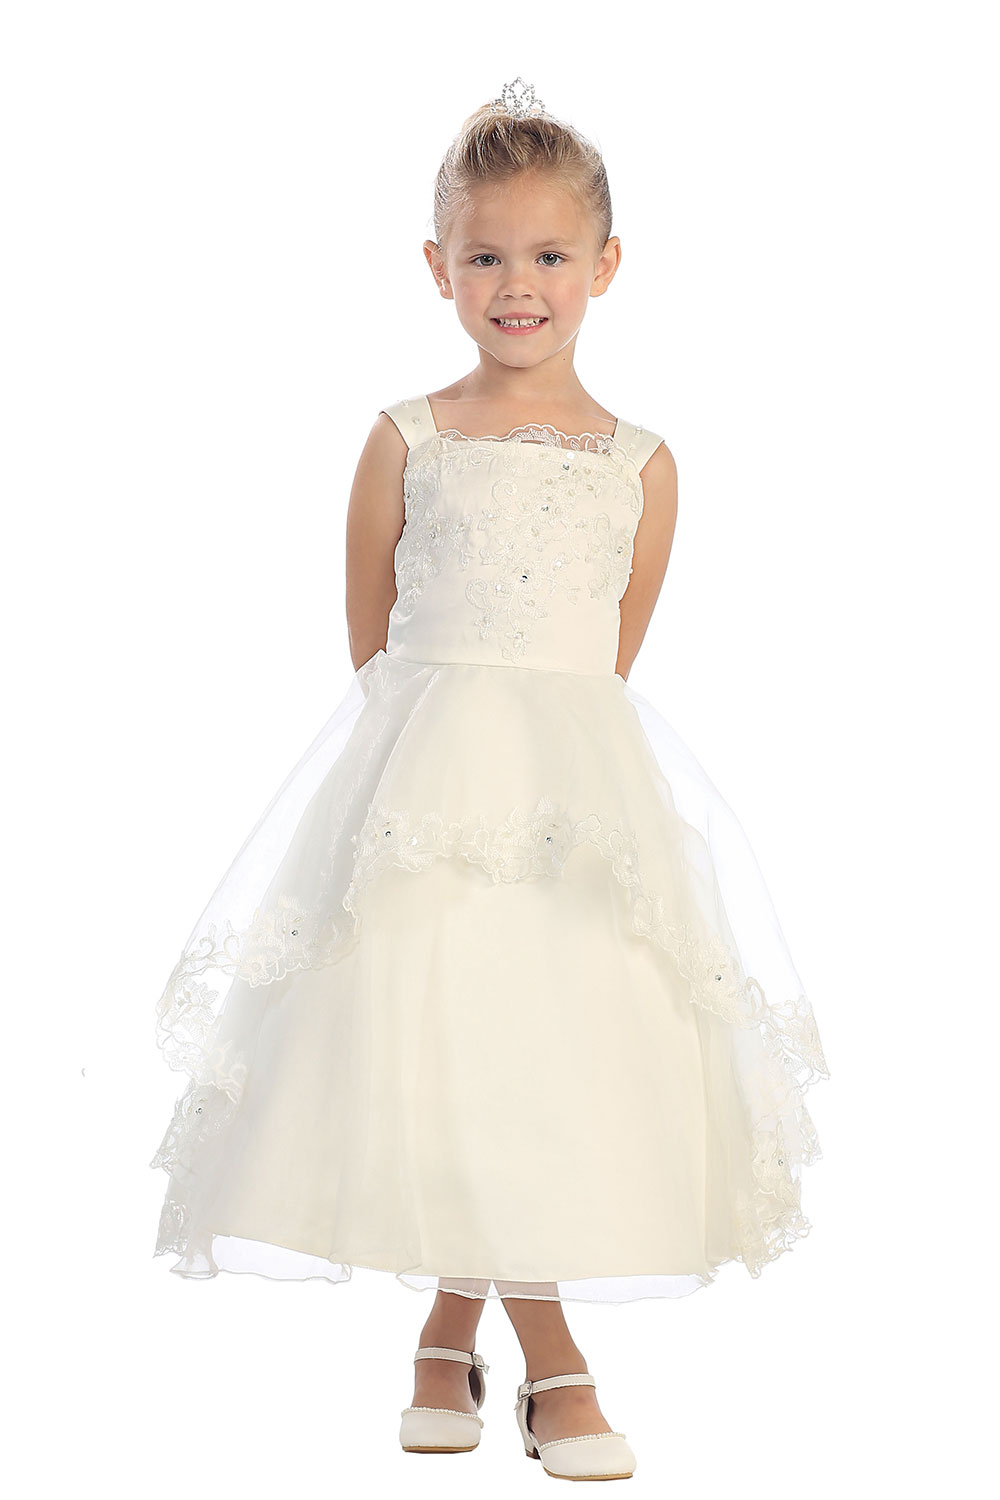 A-Line First Communion Dresses for Girls Mid-Calf Flower Girls Dresses For Wedding Gowns Pageant Dresses for Little Girls blue pageant dresses for little girls a line spaghetti straps solid appliques crystal lace up flower girl first communion gowns